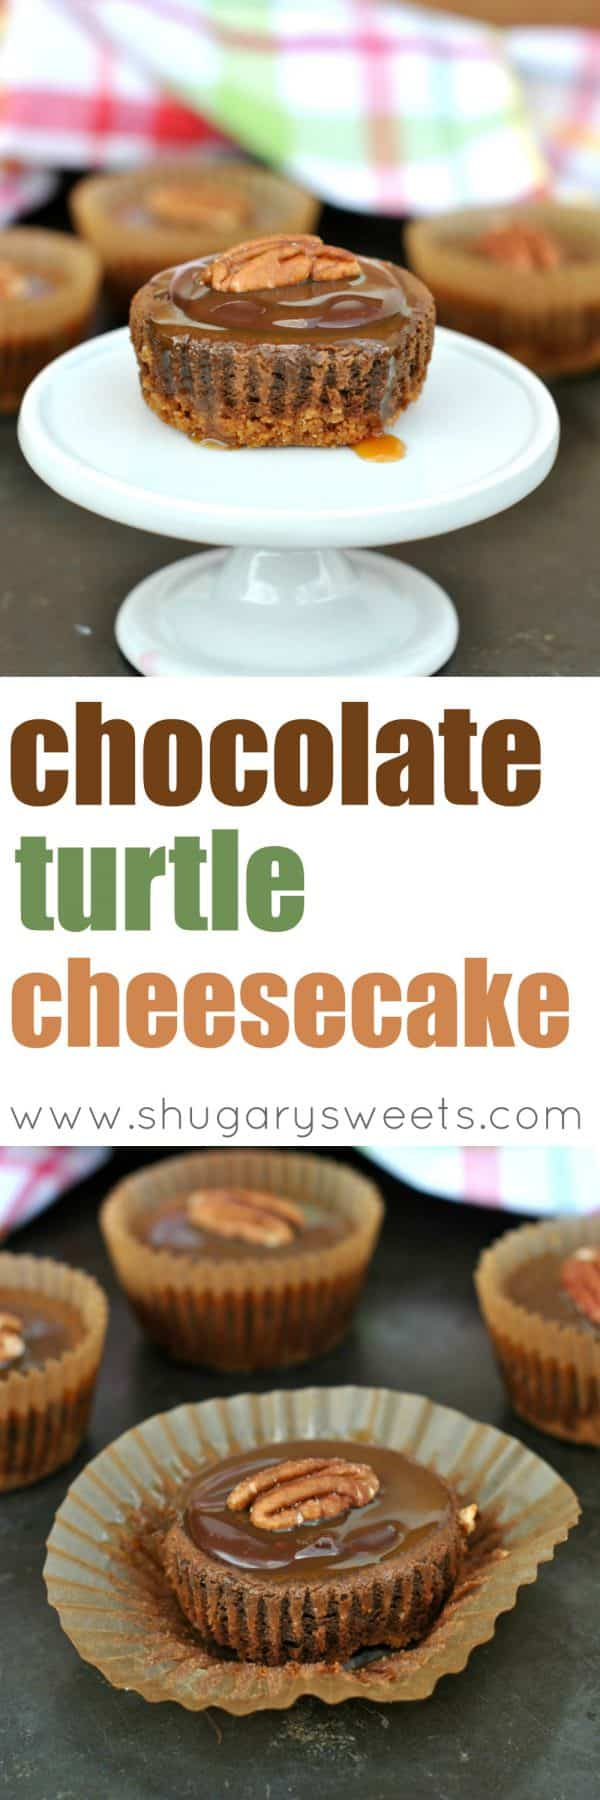 Rich, chocolate Cheesecakes topped with a milk chocolate ganache, caramel, and pecans! Next time you crave Cheesecake, try this Chocolate Turtle version!